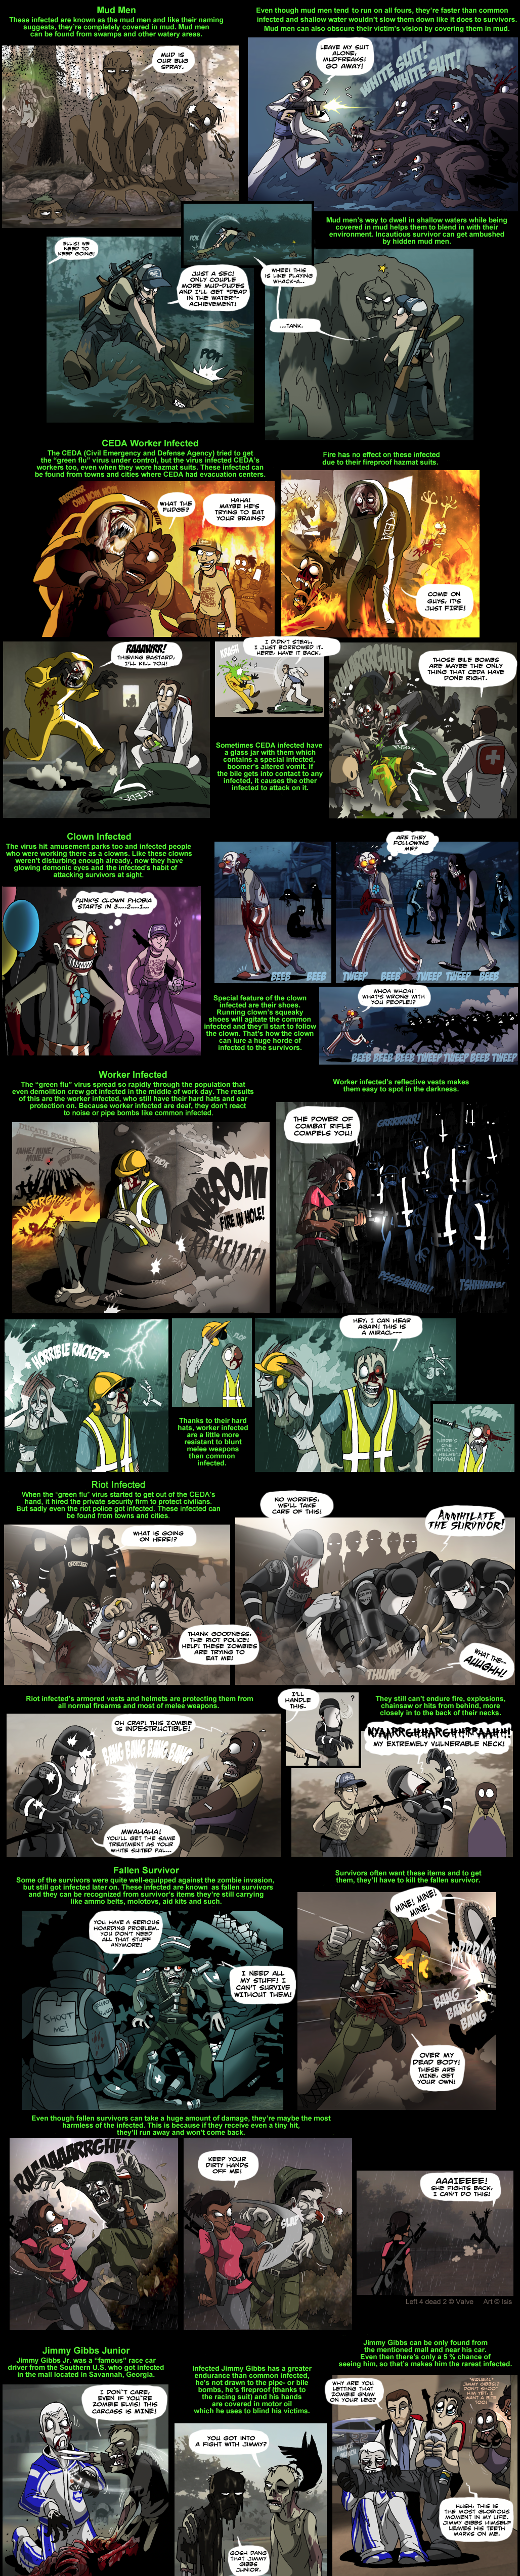 Left 4 dead 2 funny comics about marriage